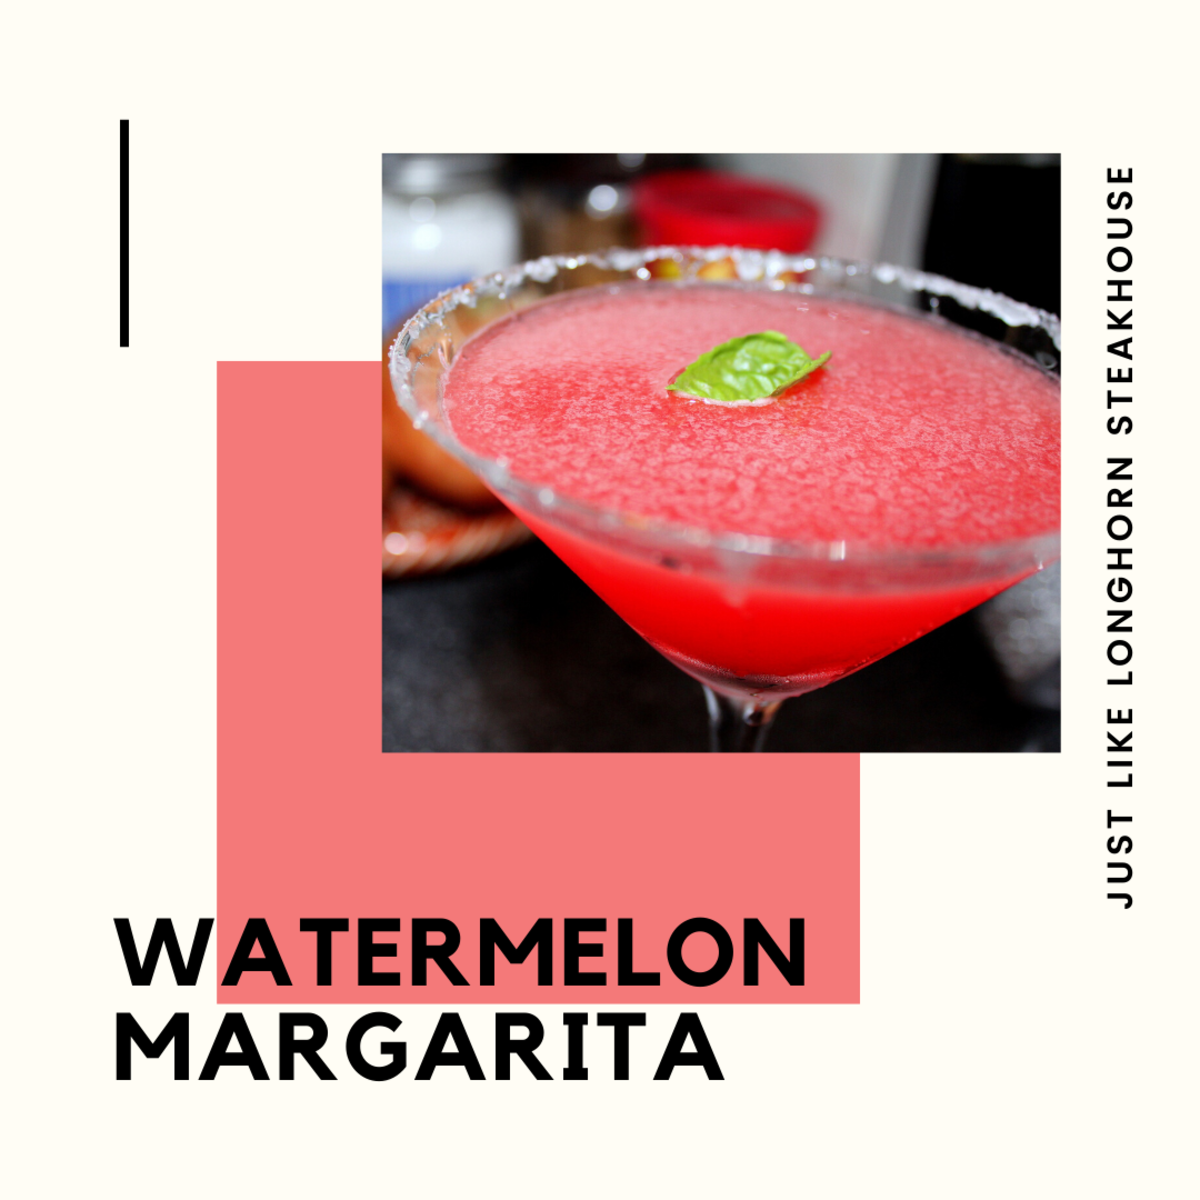 This article will show you how to make a delicious watermelon margarita exactly like the Longhorn Steakhouse version.